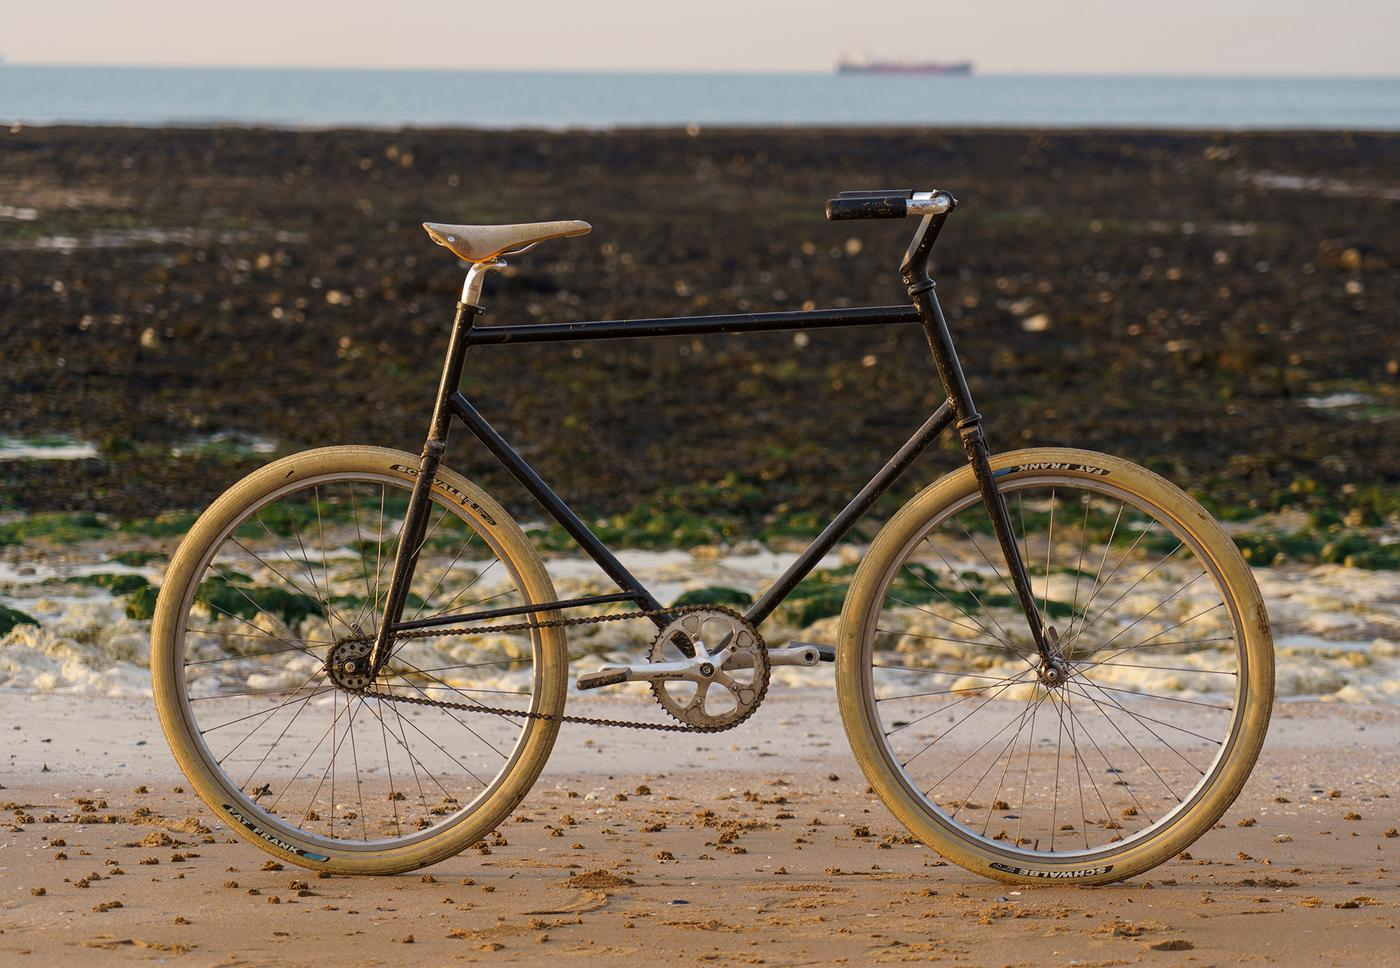 On Building the Epiplectic Bicycle